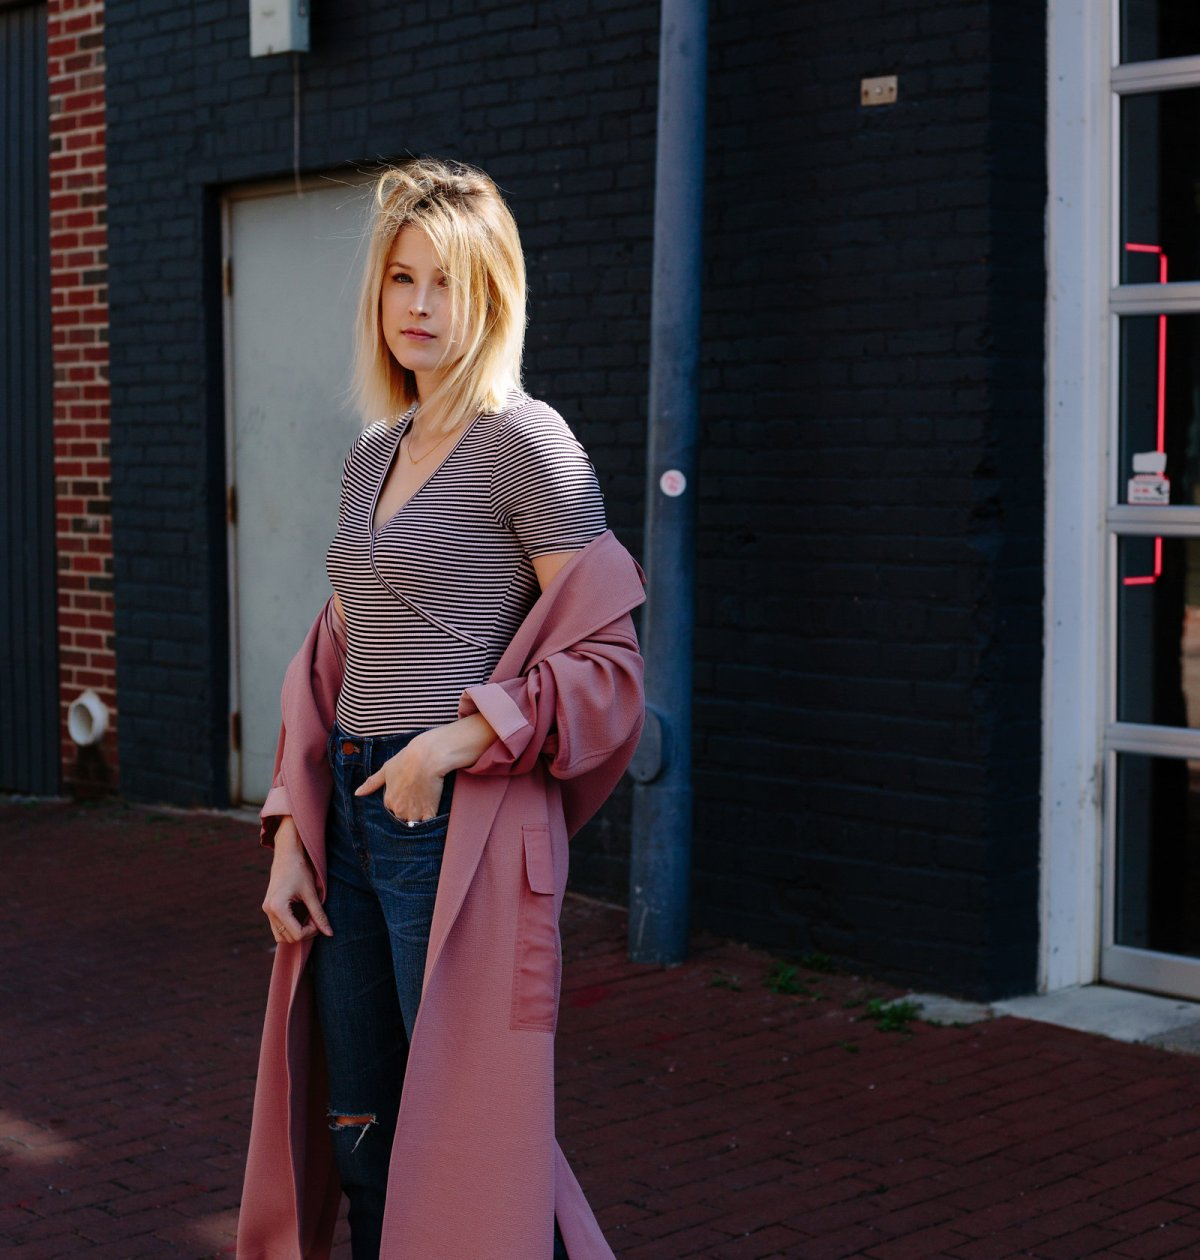 How To Wear A Duster Coat - www.viciloves.com - @viciloves1